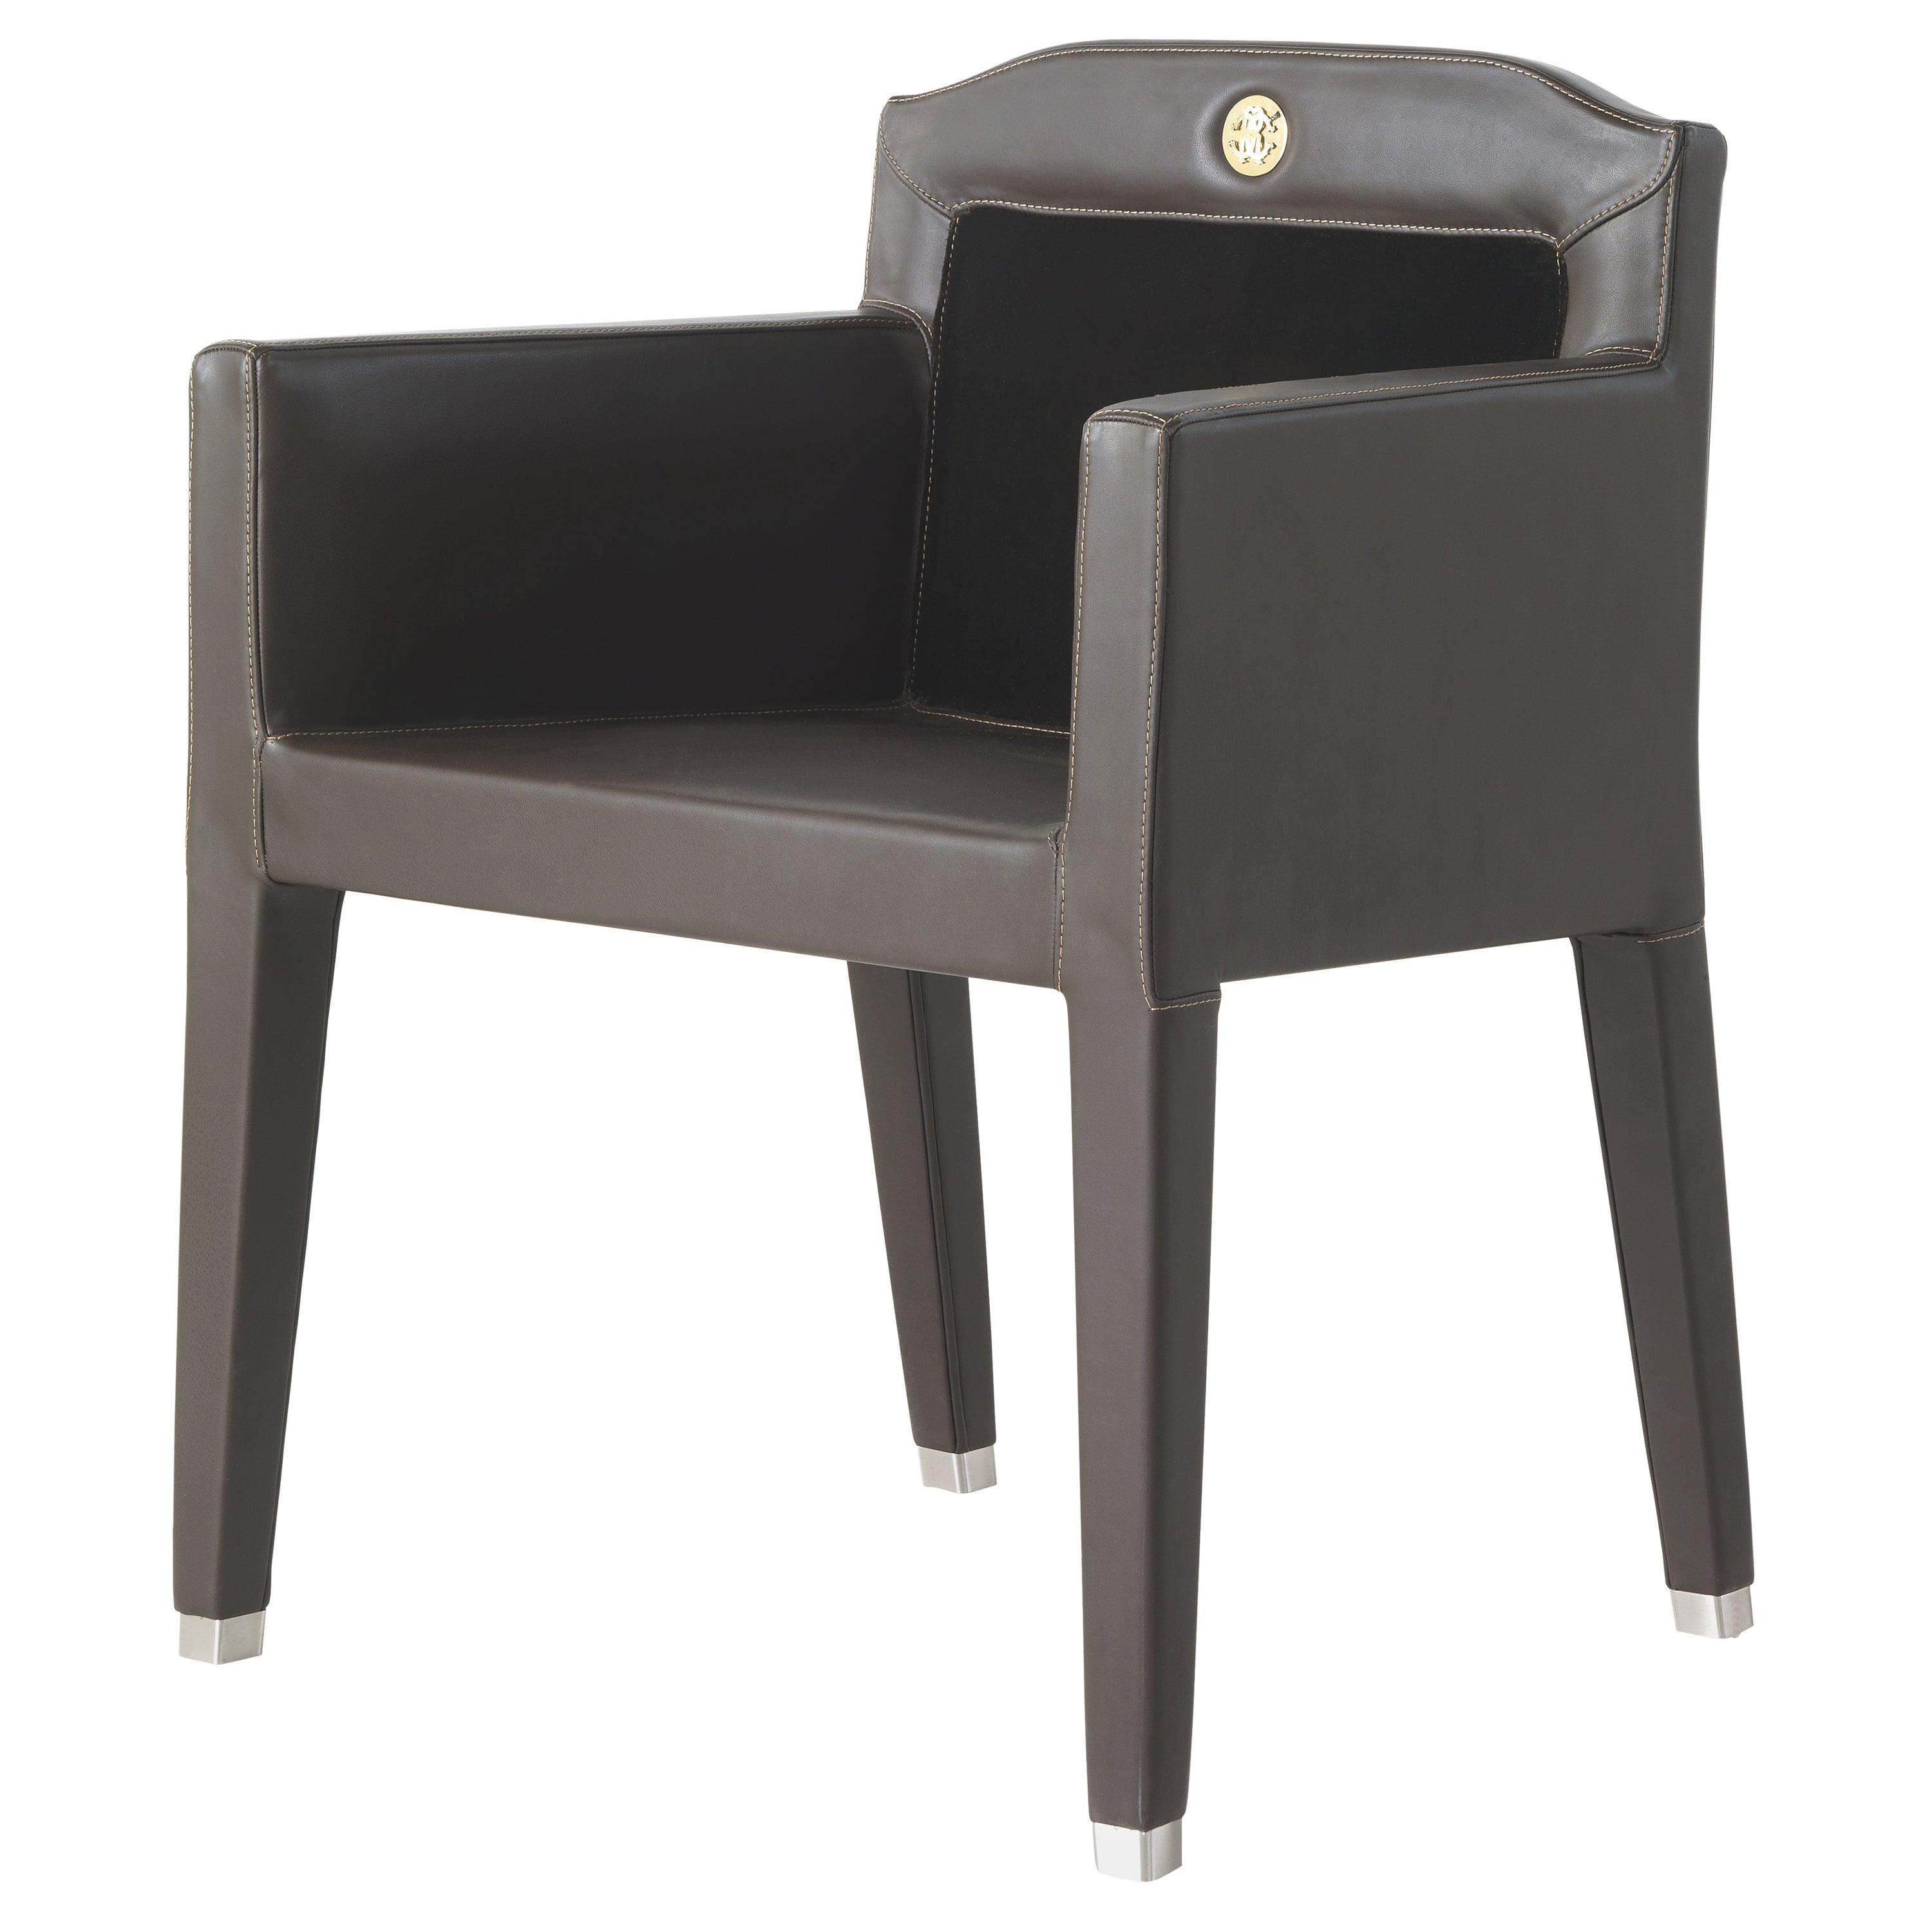 Spritz Armchair in Leather and Fabric by Roberto Cavalli Home Interiors